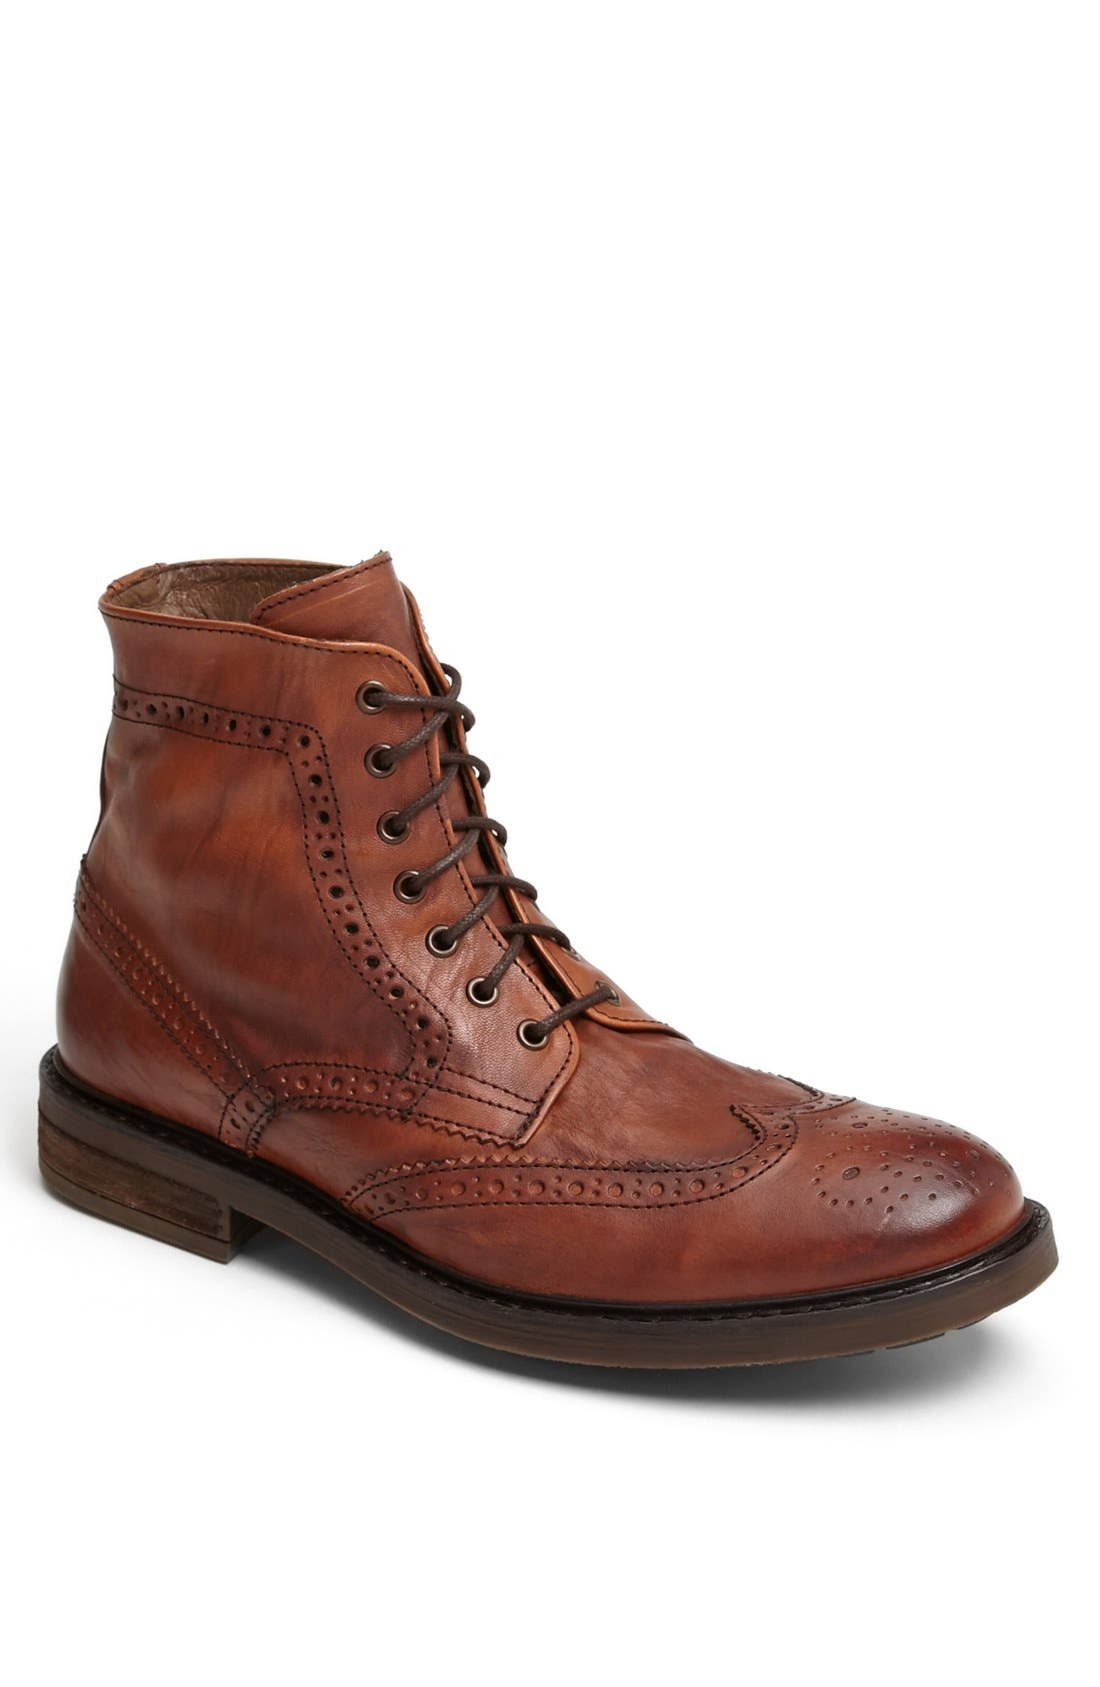 Main Image - Rogue 'William' Wingtip Boot